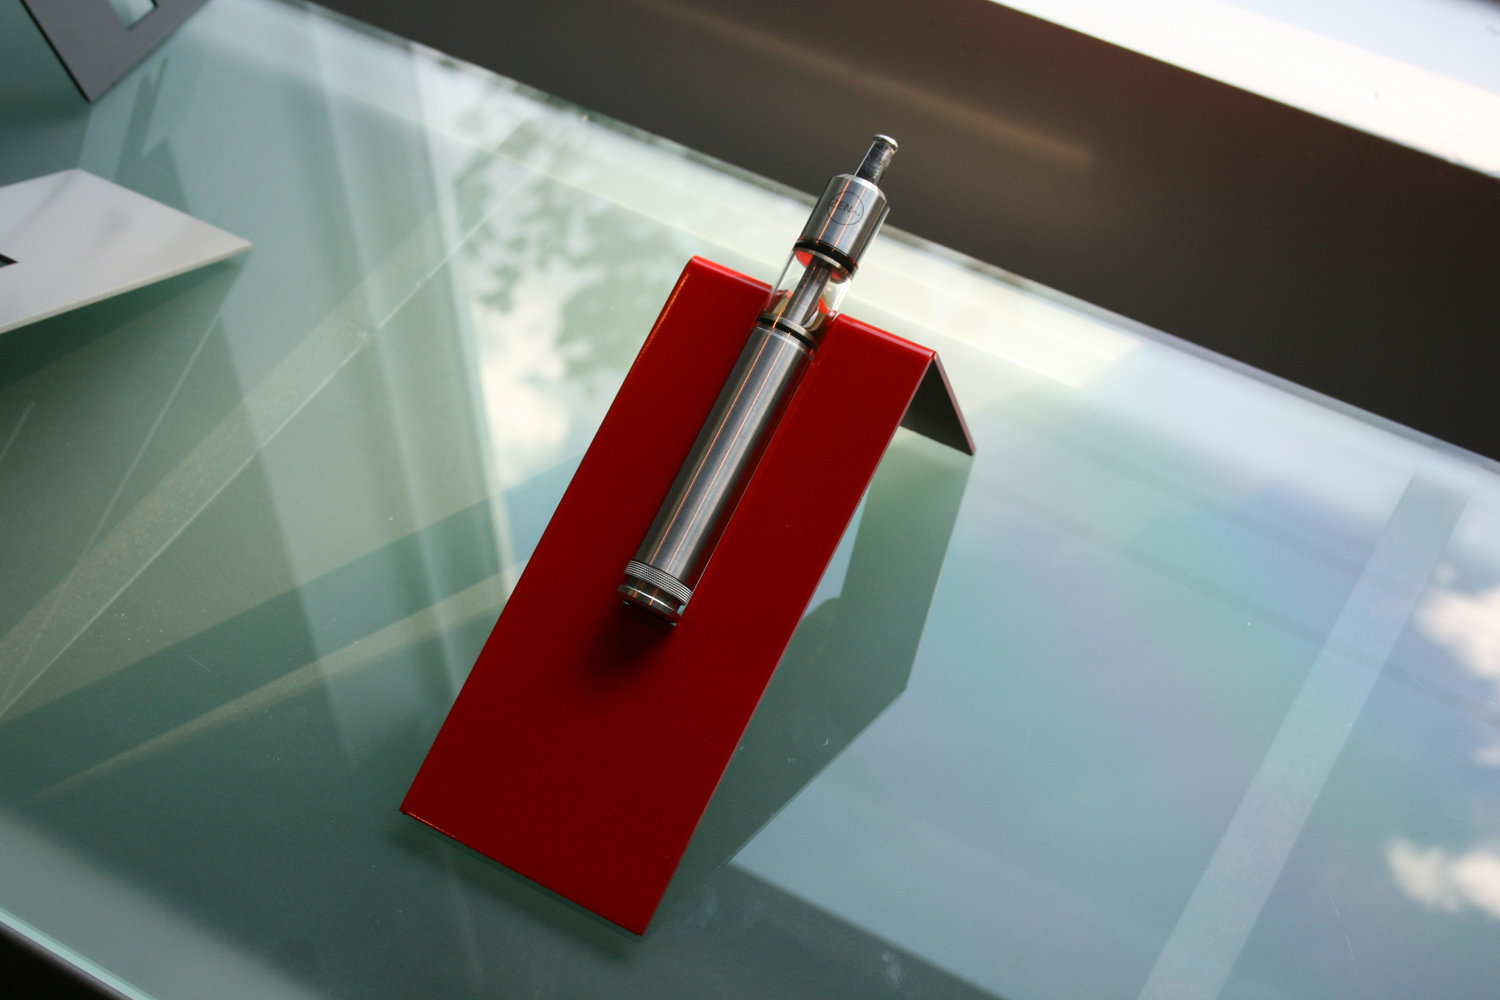 Electriccigaretteinfo.co.uk – knowing more about electronic cigarette